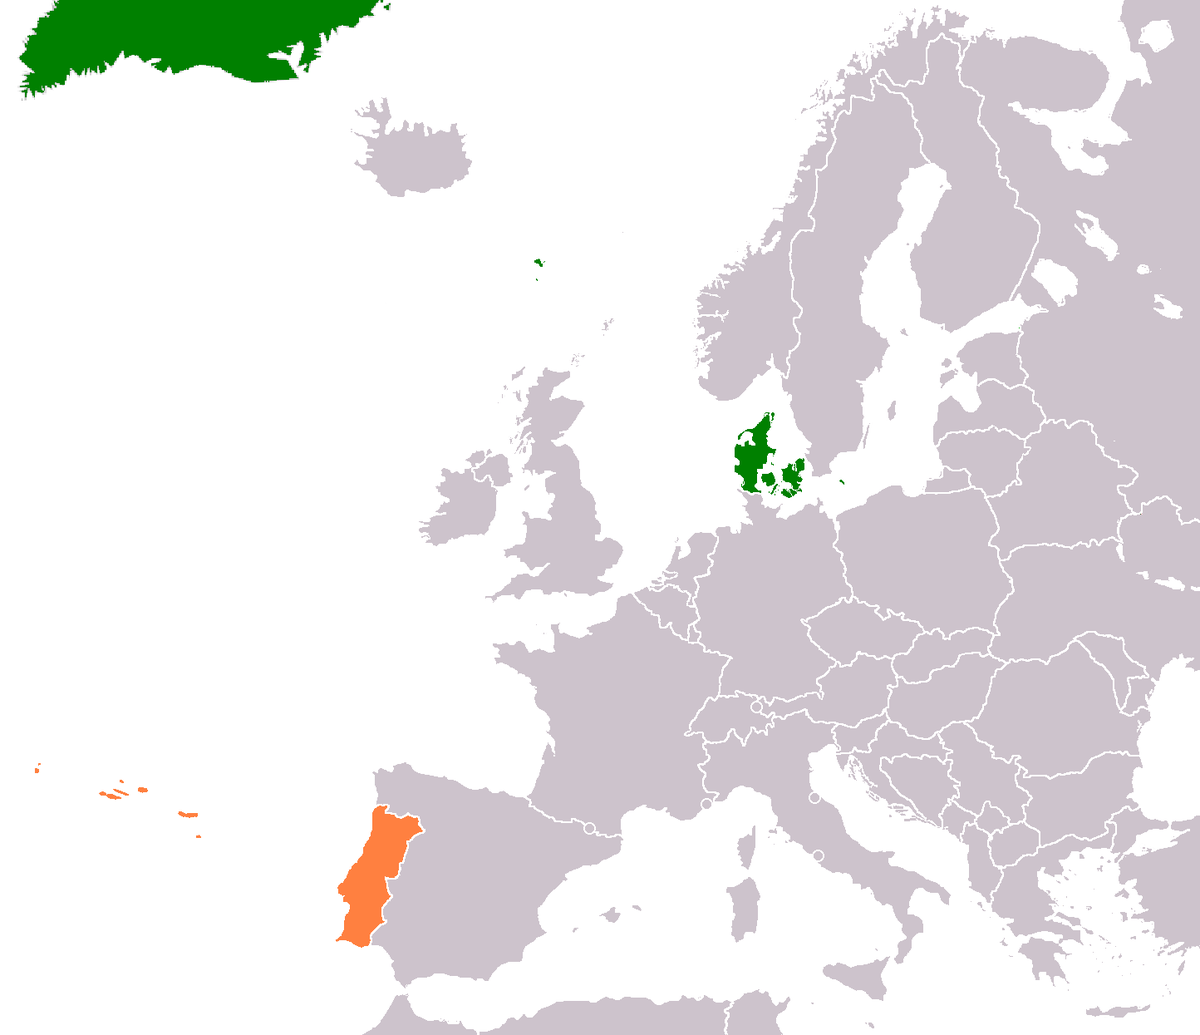 DenmarkPortugal Relations Wikipedia - Portugal map in 1200